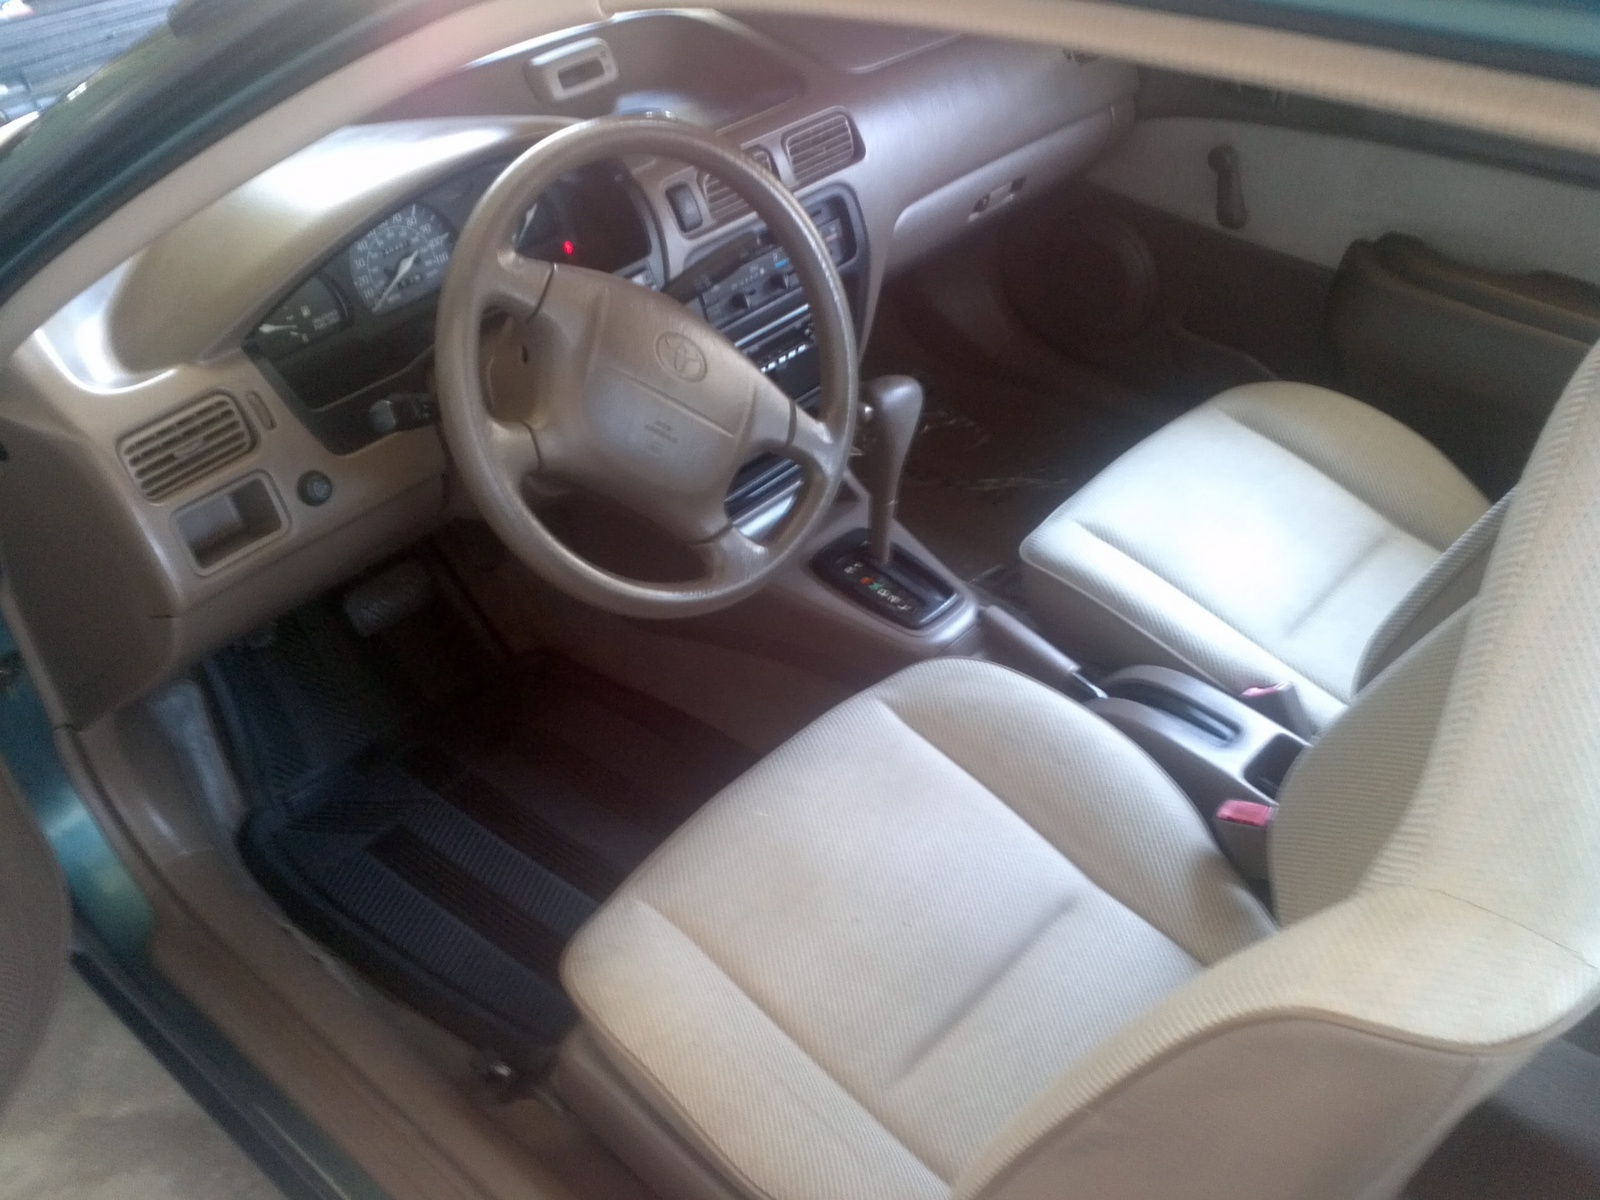 1996 Toyota Tercel 2 Dr DX Coupe picture, interior